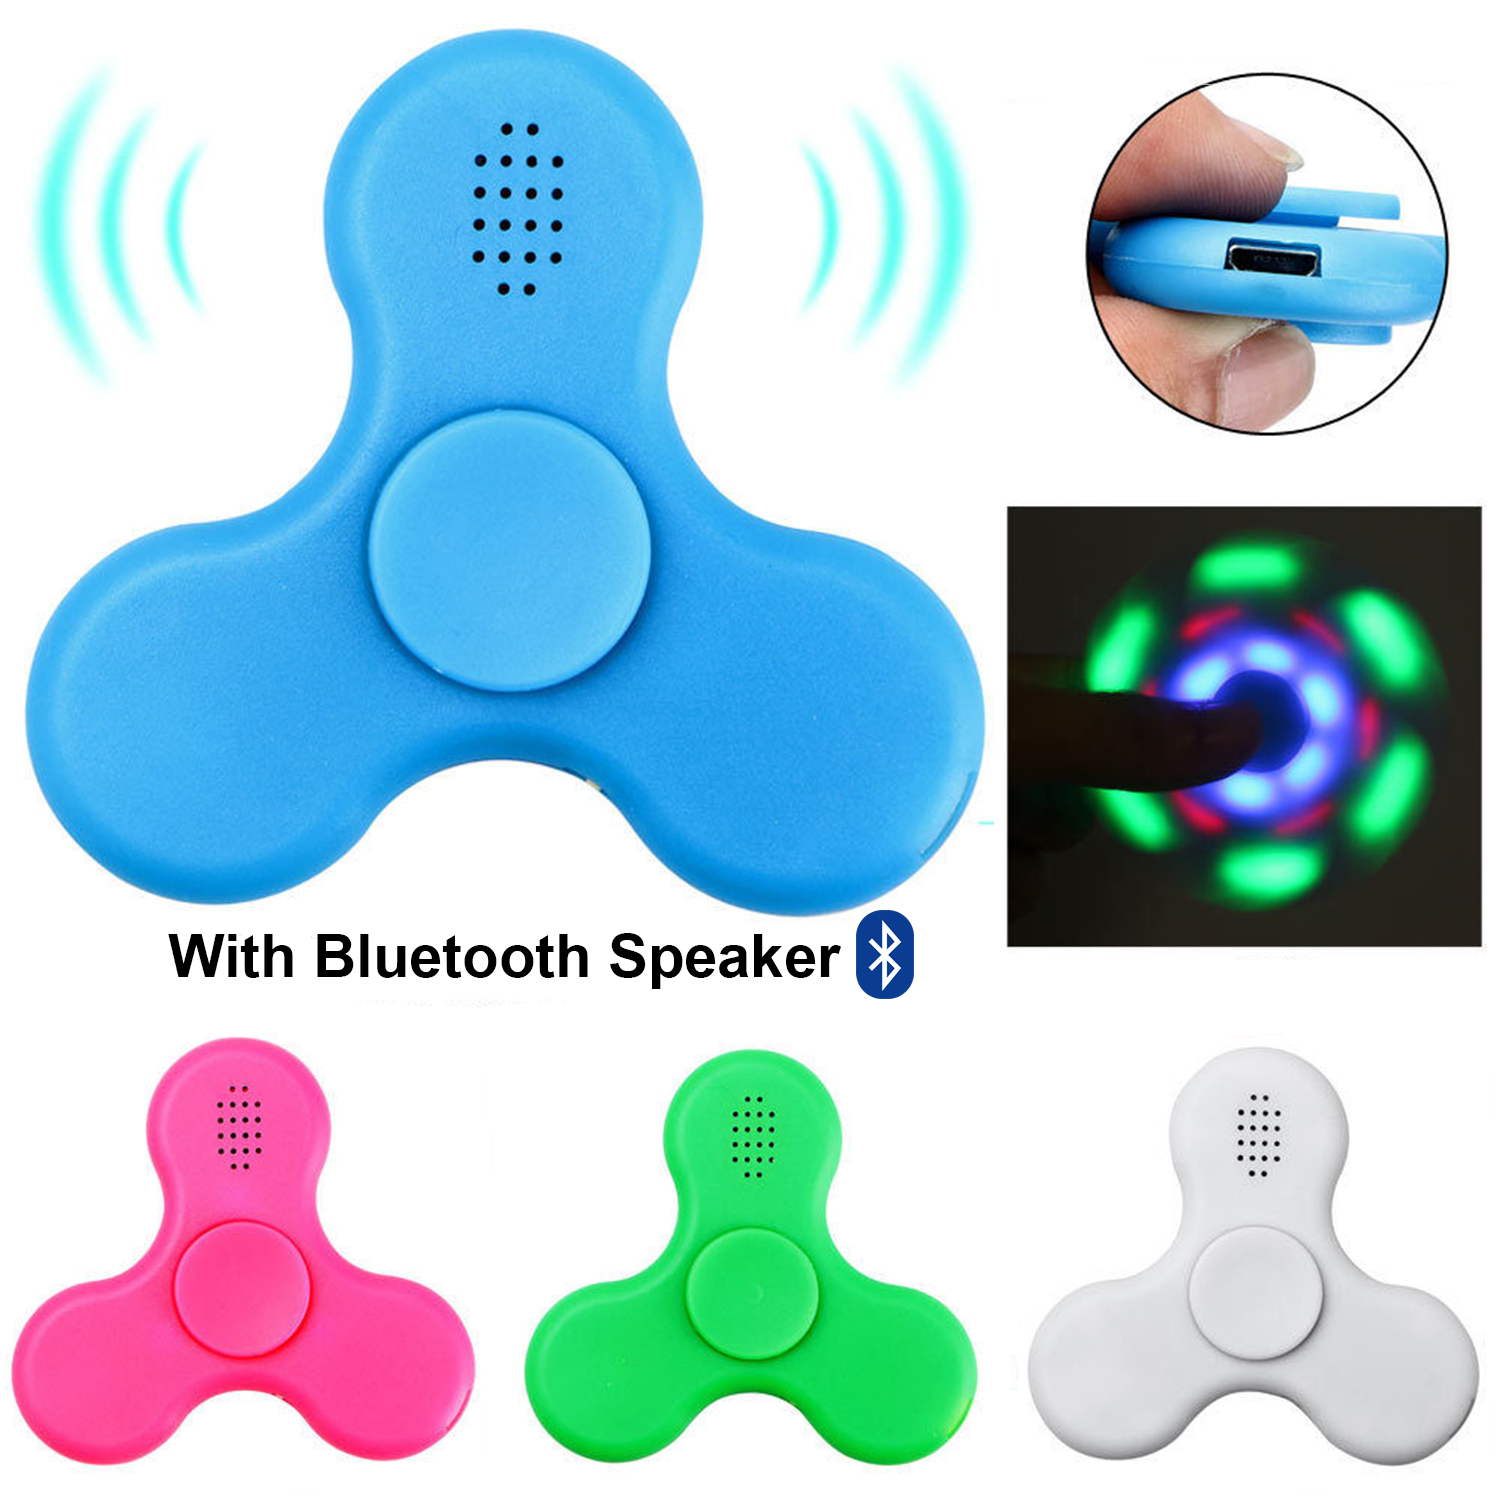 f045a09f20c6a Details about Fidget Spinner with LED Light Bluetooth Speaker Relieve  Stress Hand Spinner Toy